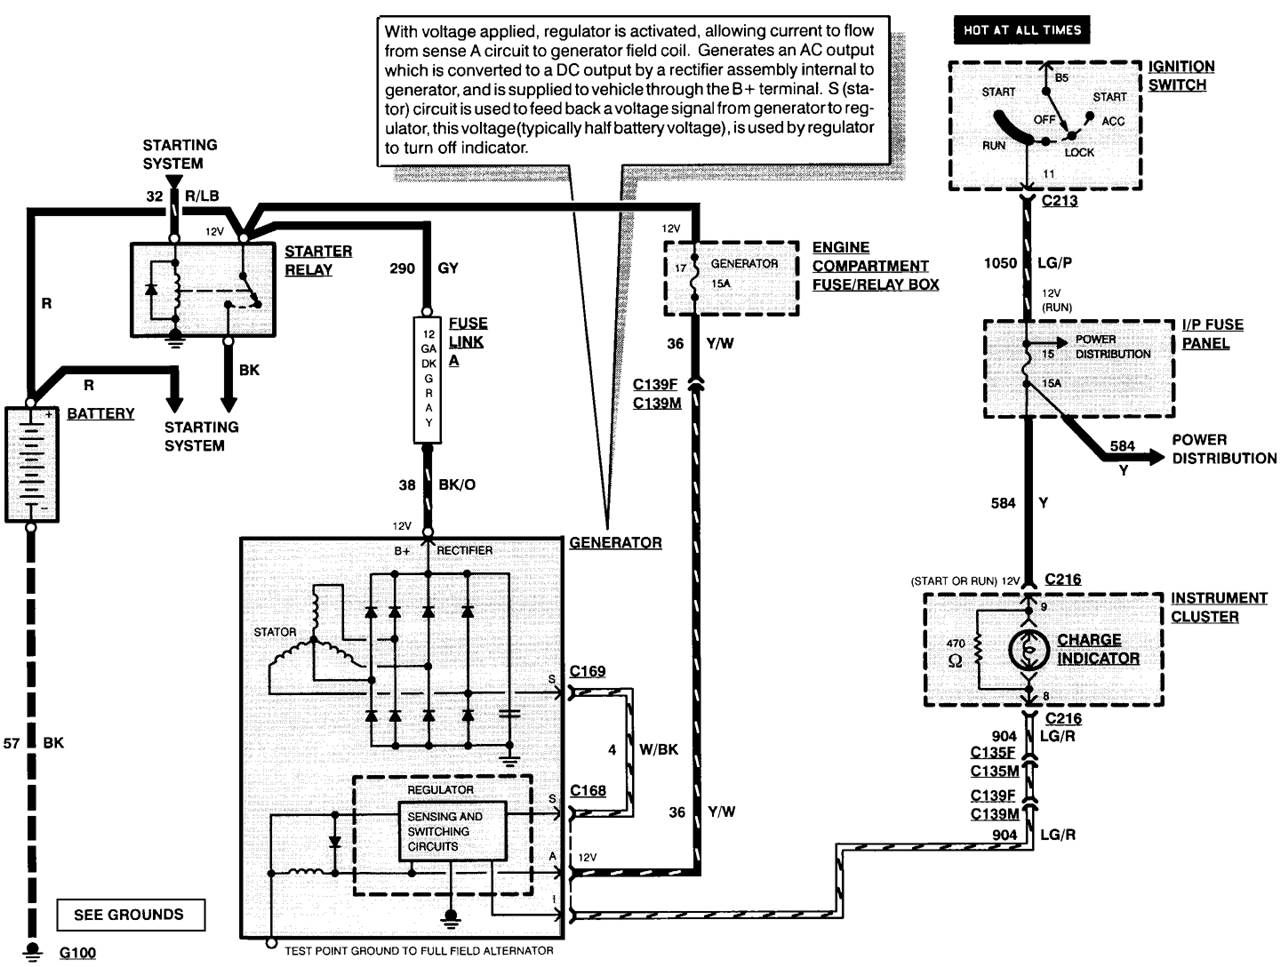 leviton 6683 wiring diagram hoffberg alternator wiring diagram hoffberg image wiring diagram of alternator wiring wiring diagrams online on hoffberg